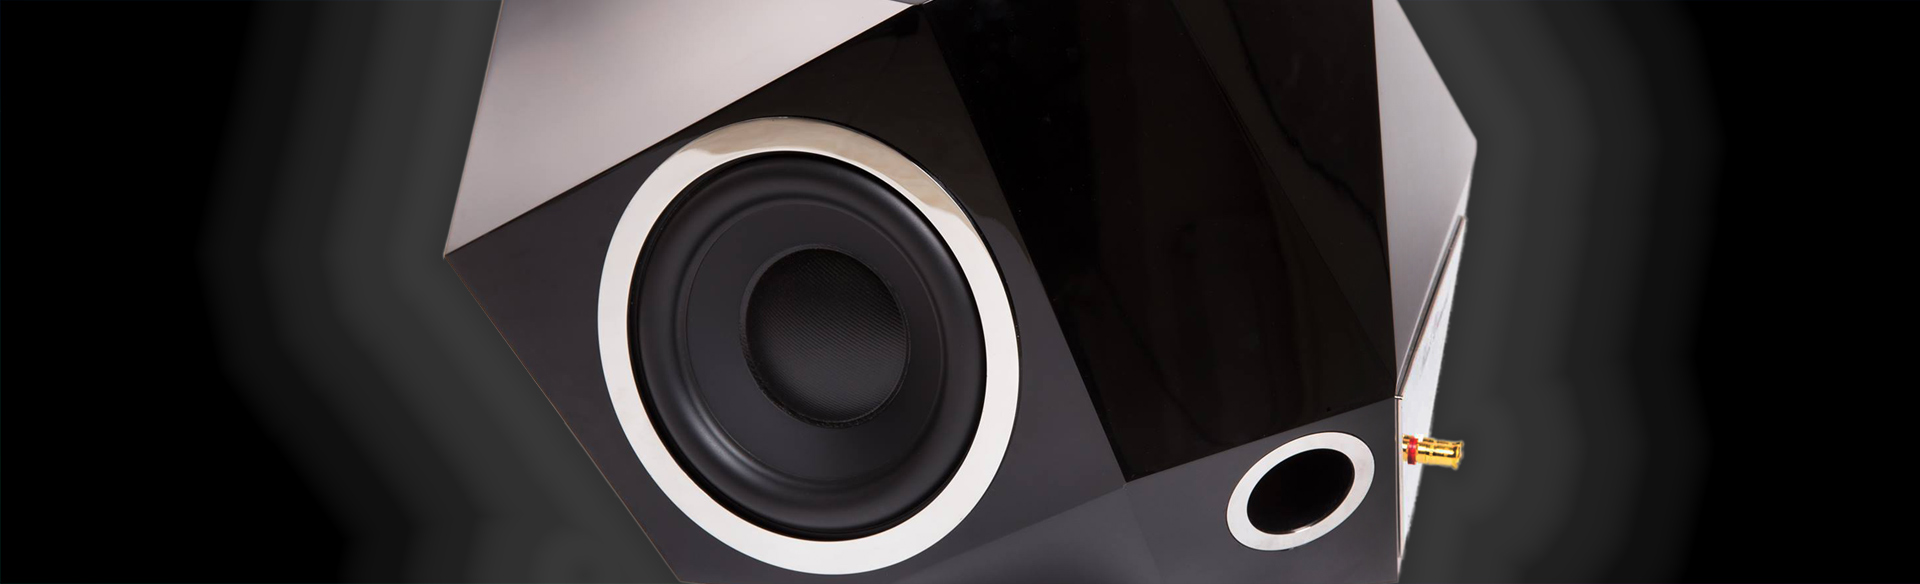 Black Diamond subwoofer